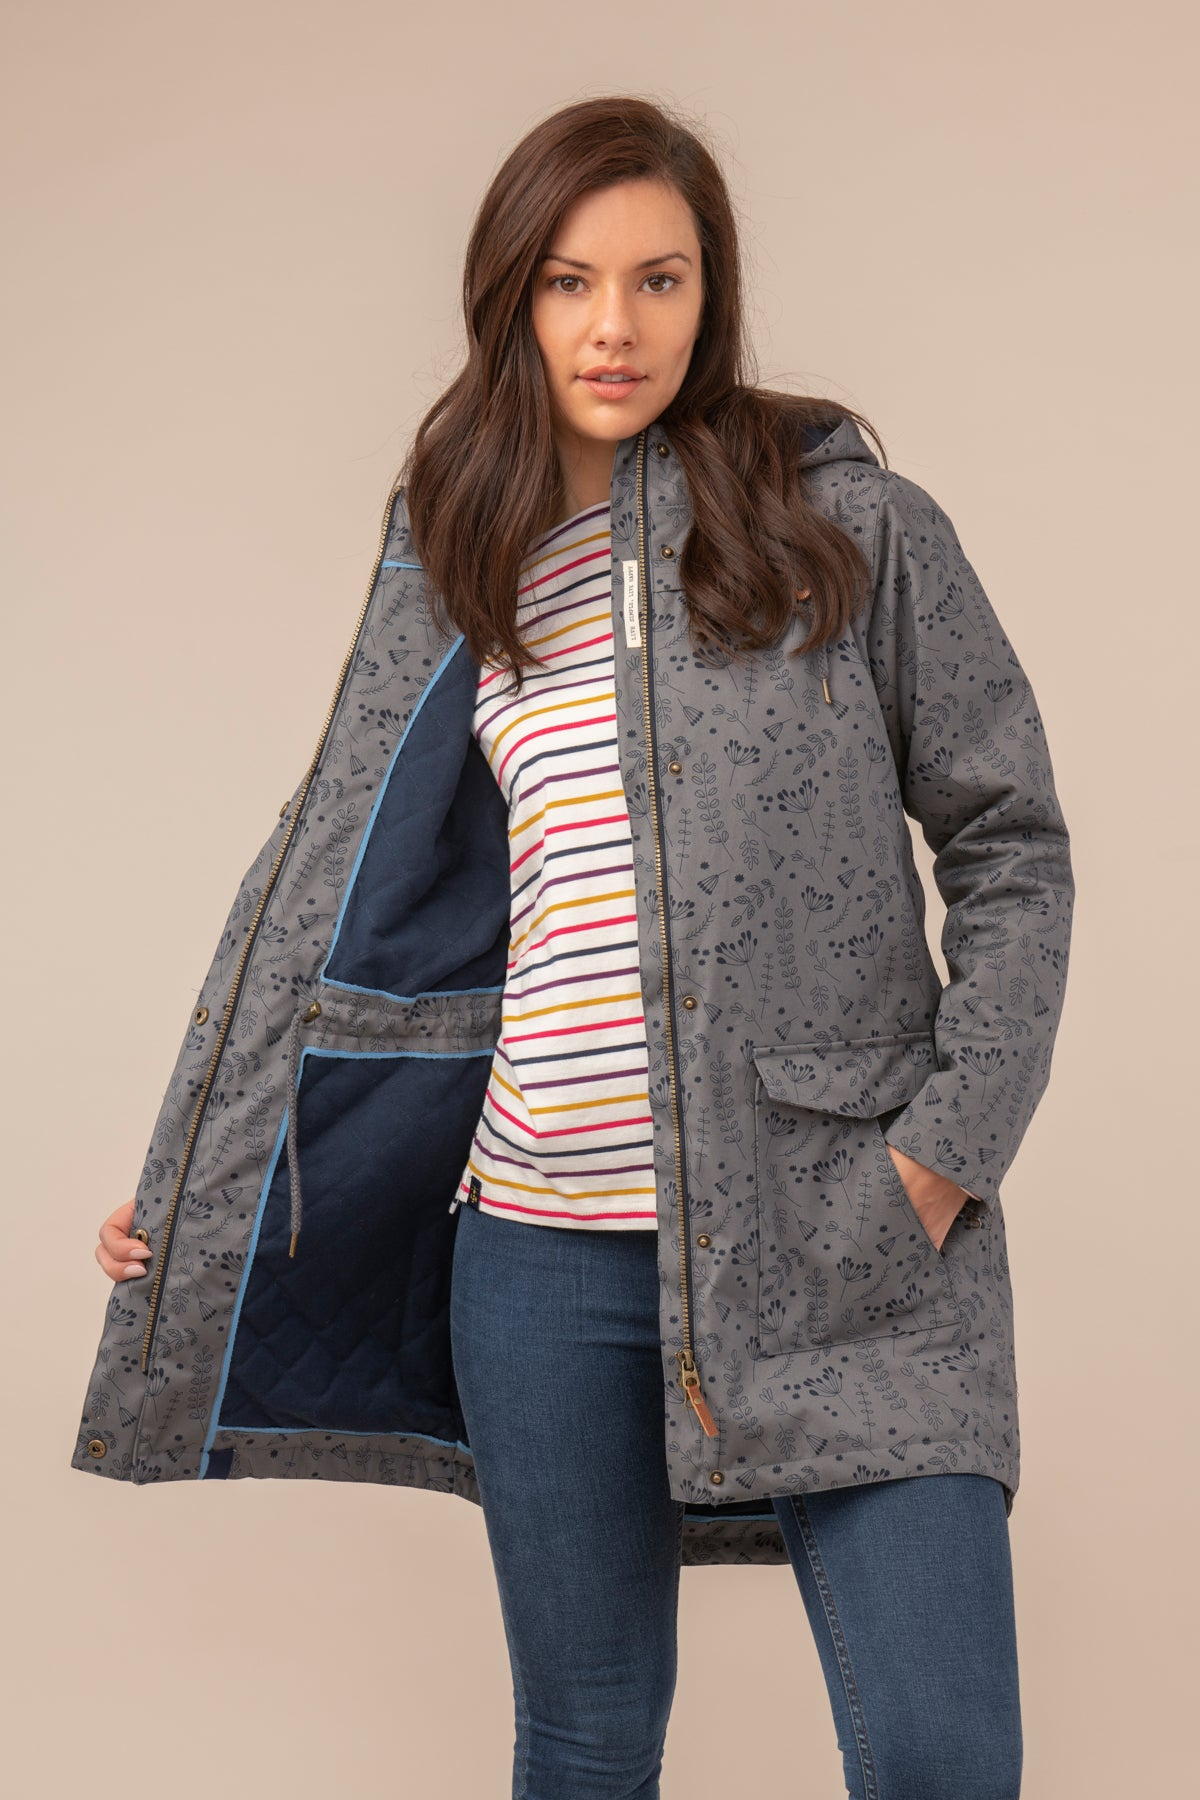 Lighthouse Alanna Womens Warm Waterproof 3/4 Length Parka - Grey Print